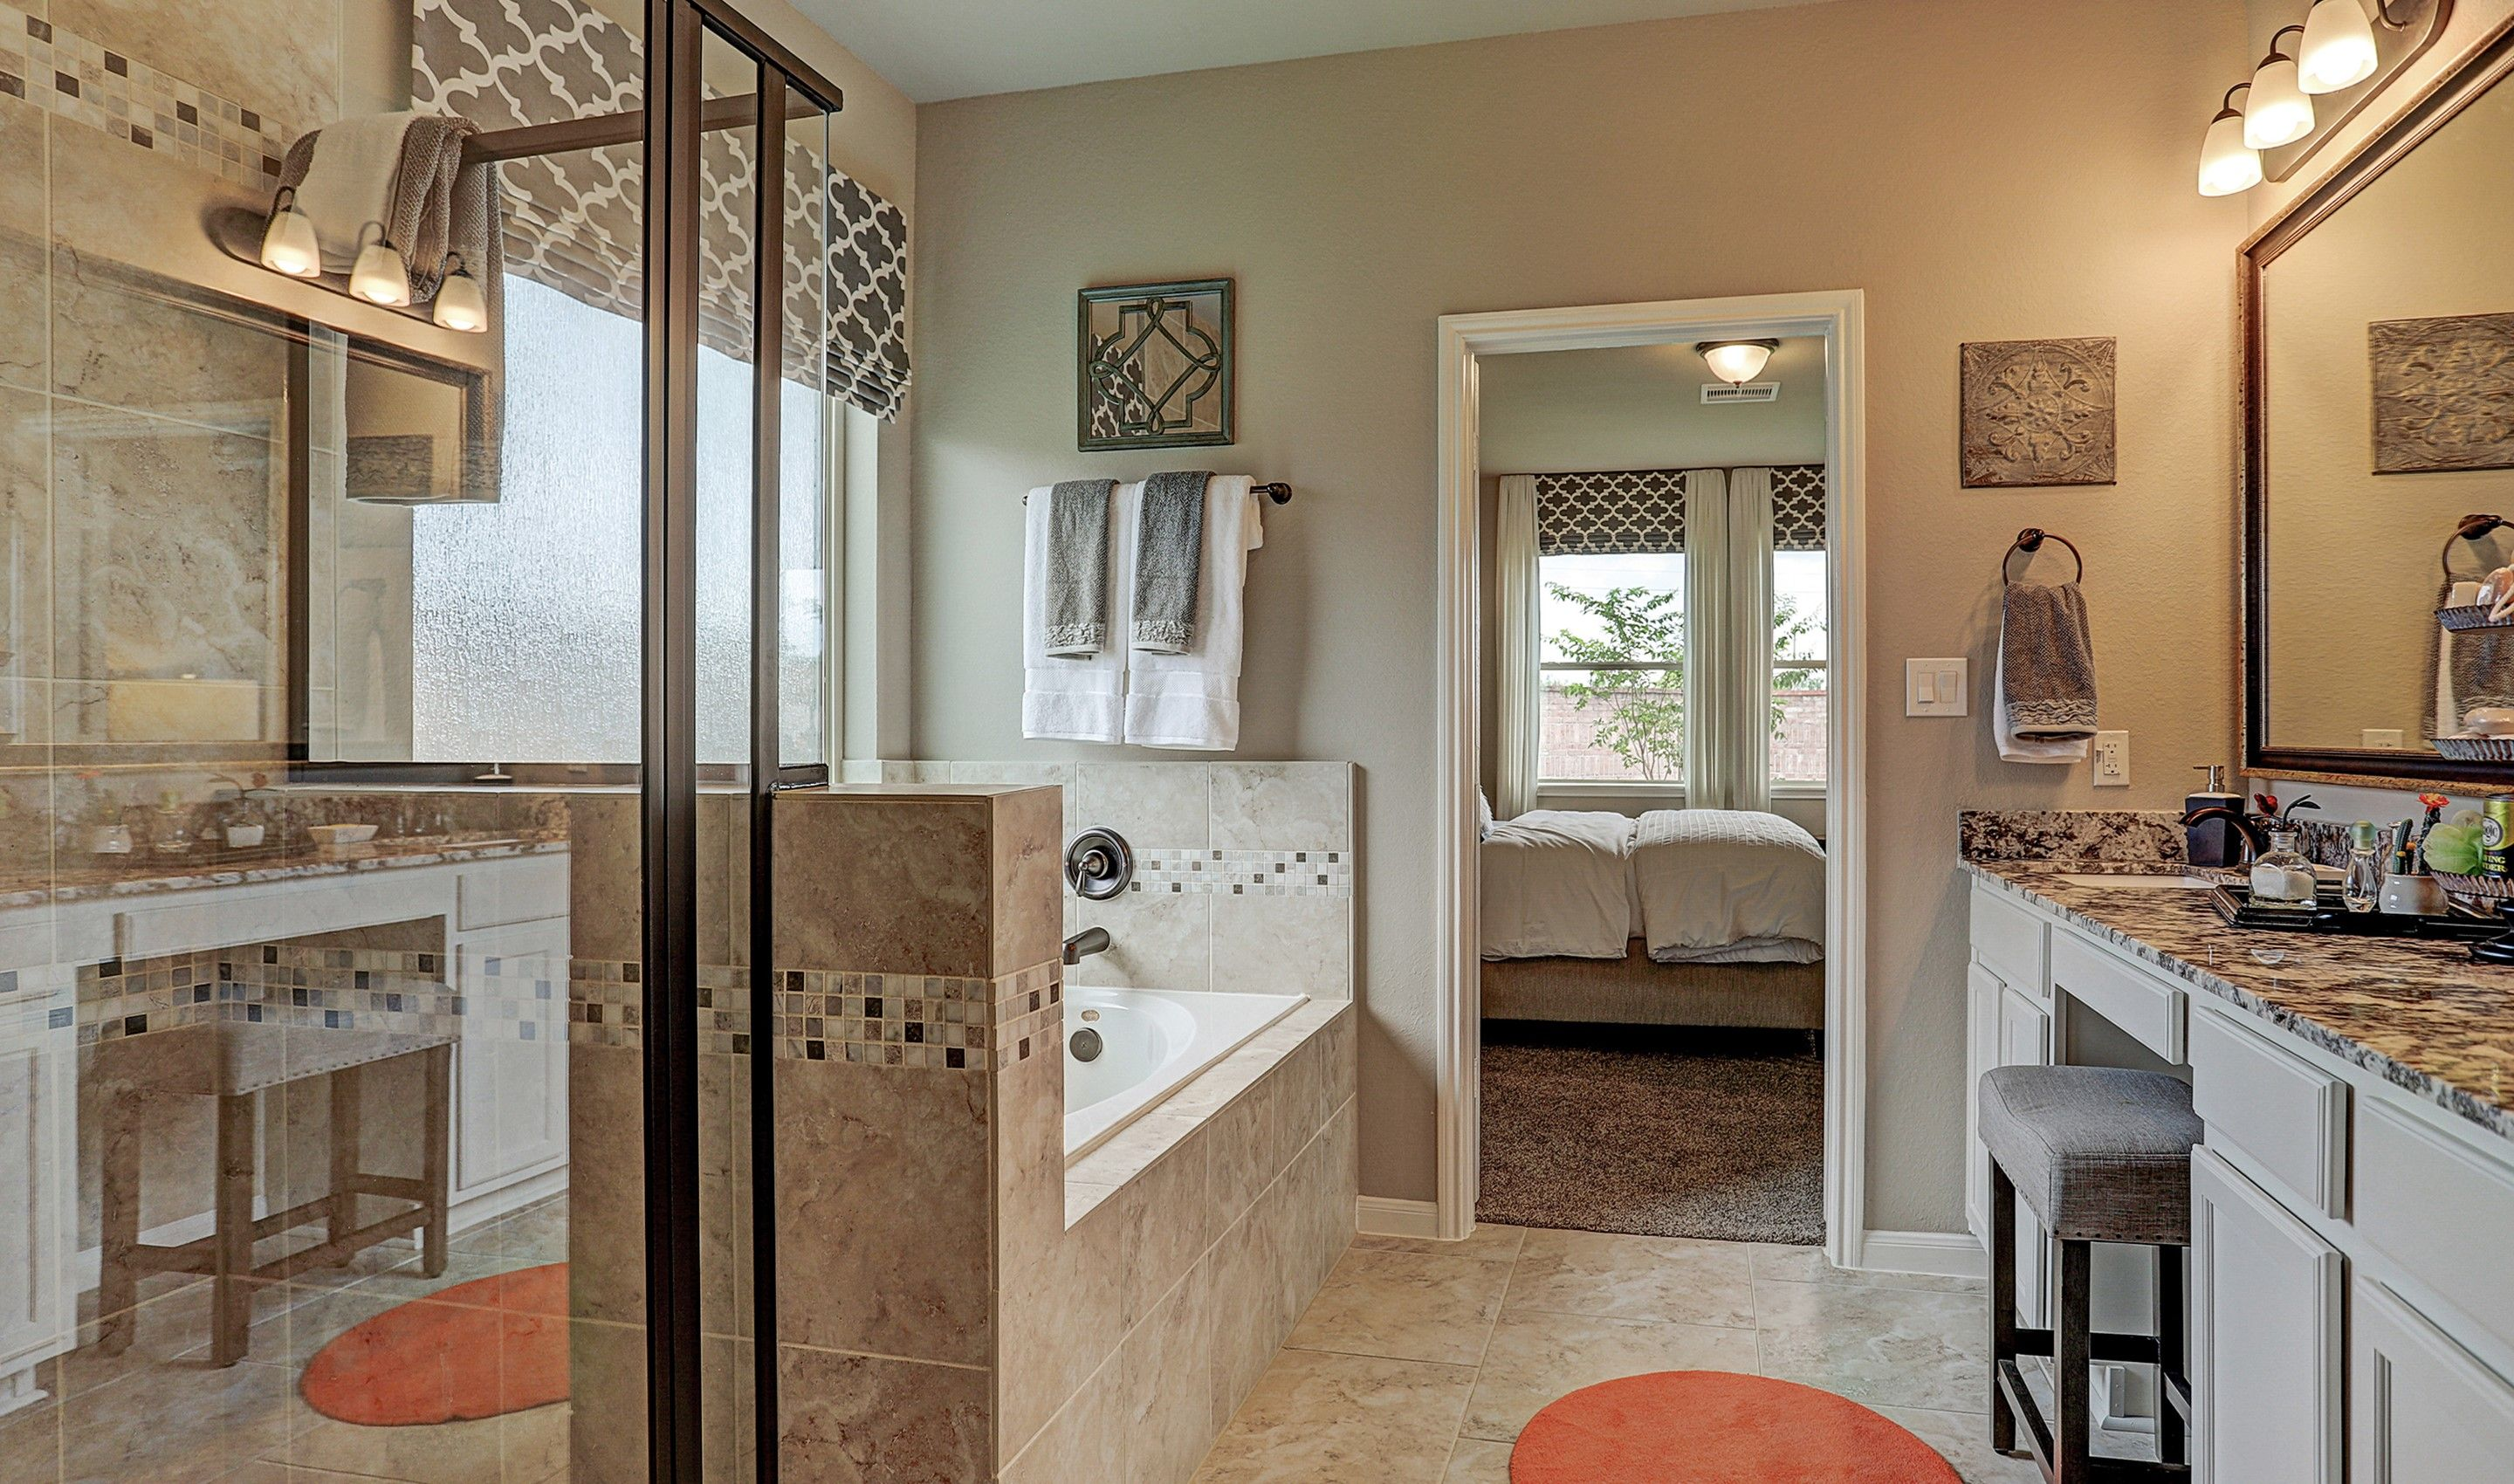 Bathroom featured in the Darlington II By K. Hovnanian® Homes in Houston, TX